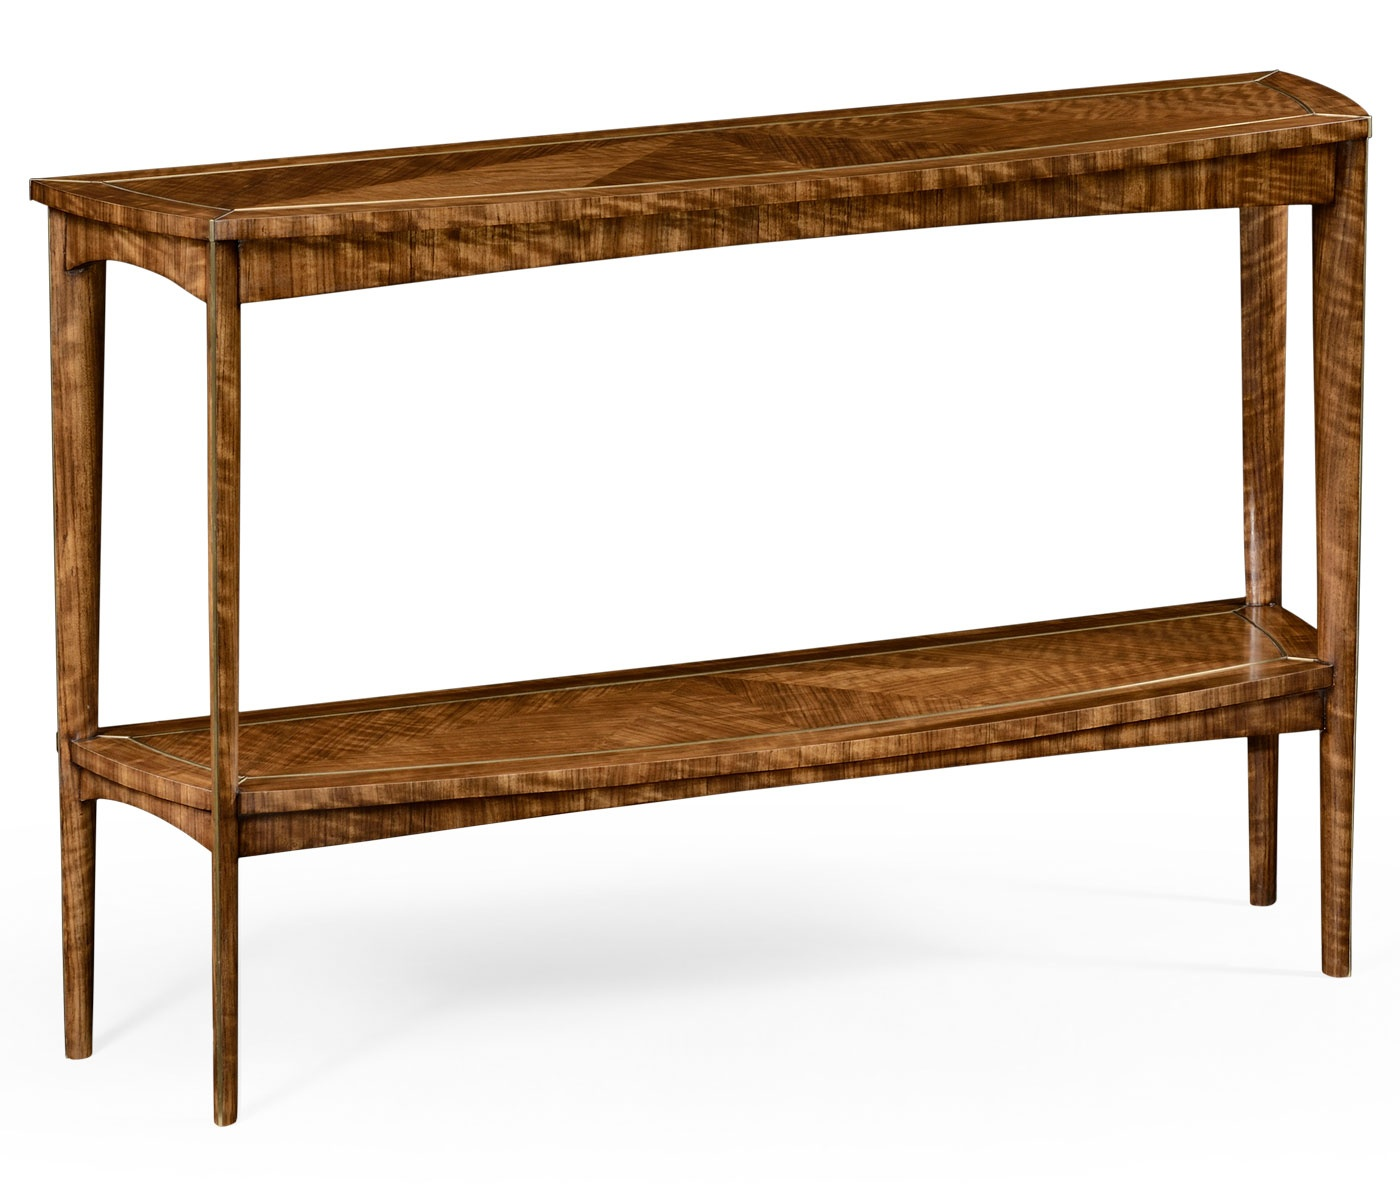 Fabulous Jonathan Charles Furniture Narrow Console Table With Shelf Unemploymentrelief Wooden Chair Designs For Living Room Unemploymentrelieforg